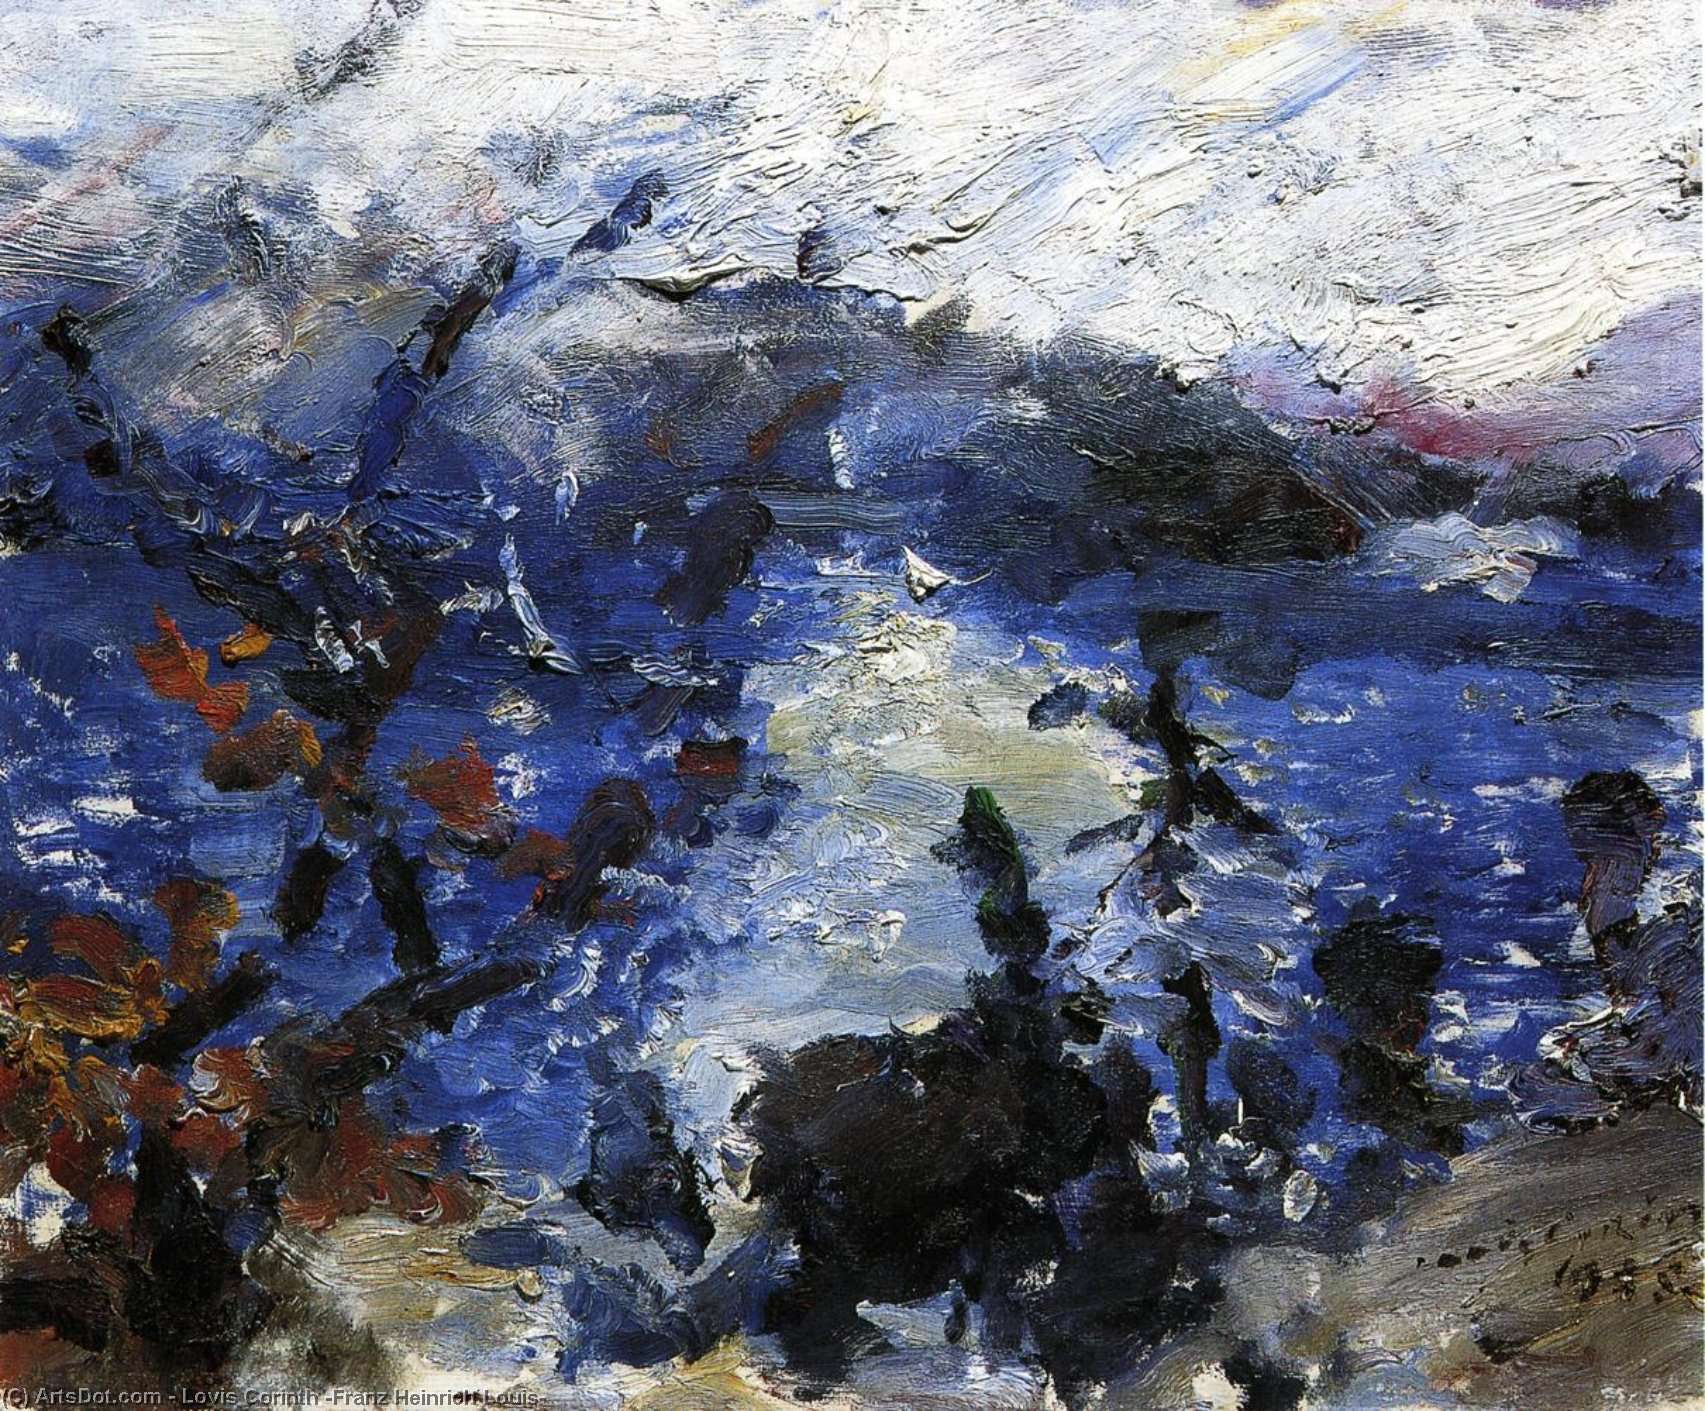 The Walchensee, Mountains Wreathed in Cloud, Painting by Lovis Corinth (Franz Heinrich Louis) (1858-1925, Netherlands)